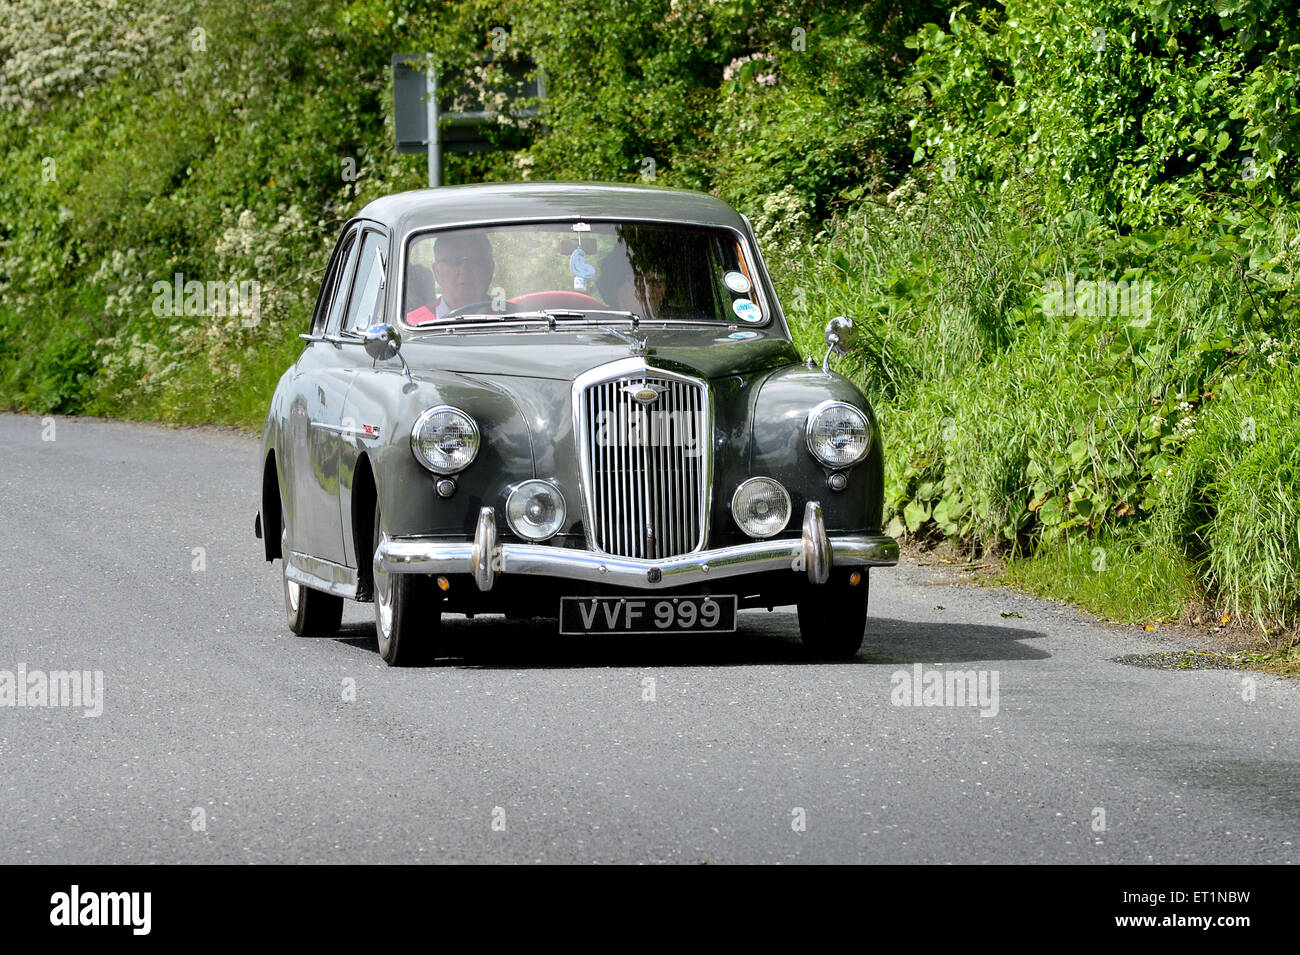 1950s Wolesley Classic saloon car on country road, Burnfoot, County Donegal, Ireland - Stock Image